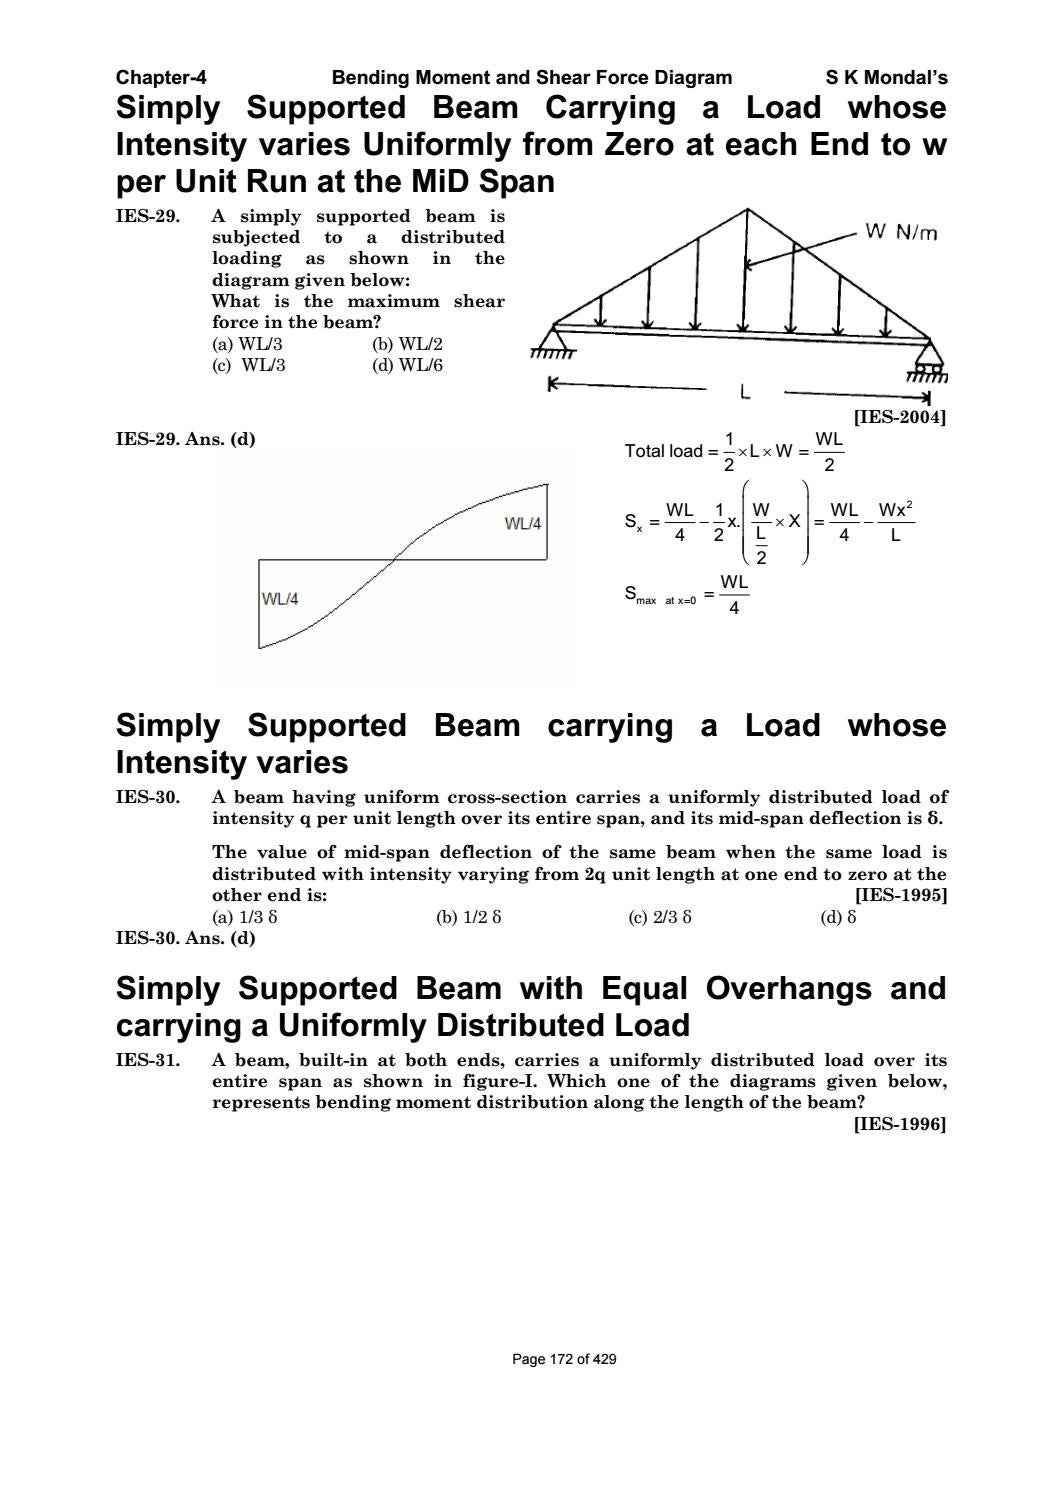 Strength Of Materials By S K Mondal Pdf Sdharmaraj Issuu Shear Force And Bending Moment Diagrams For Different Beams